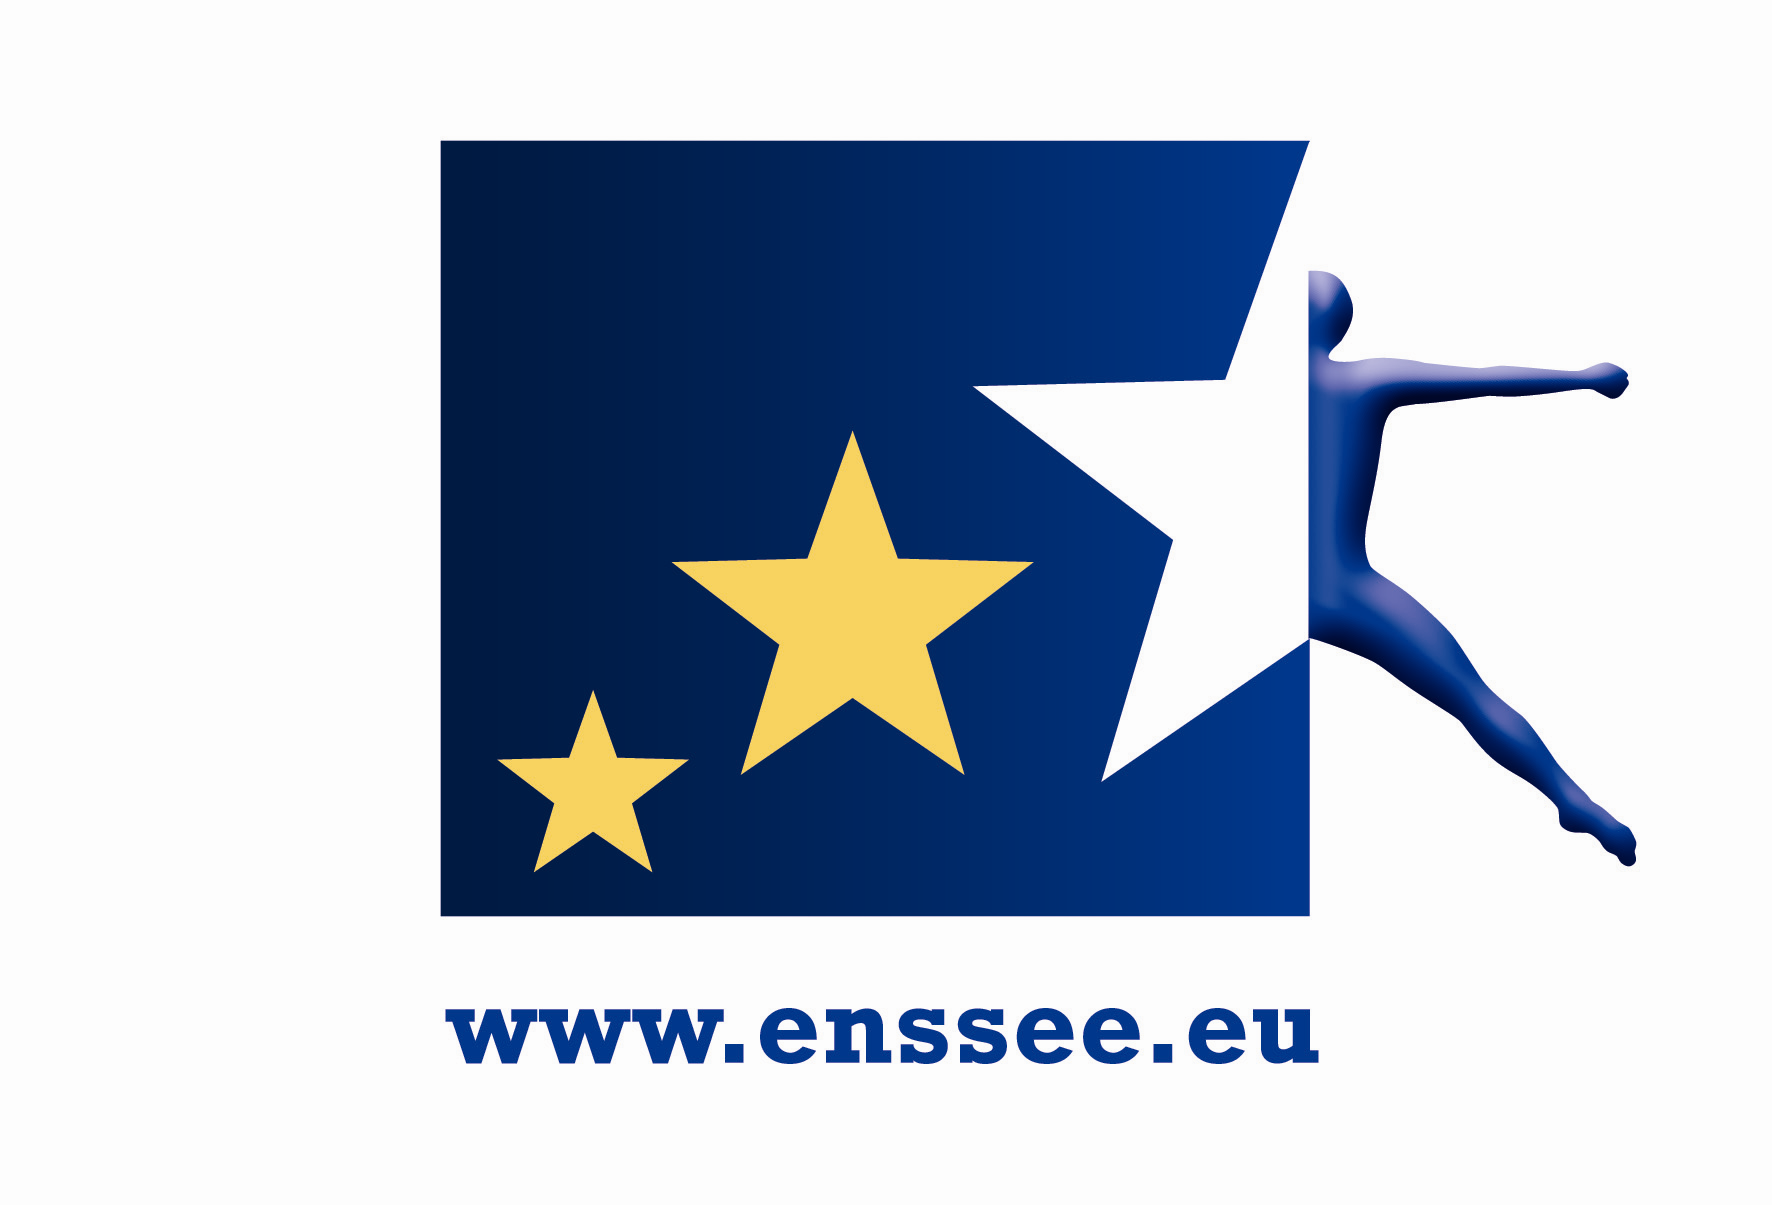 ENSSEE– European Network of Sport Science, Education & Employment